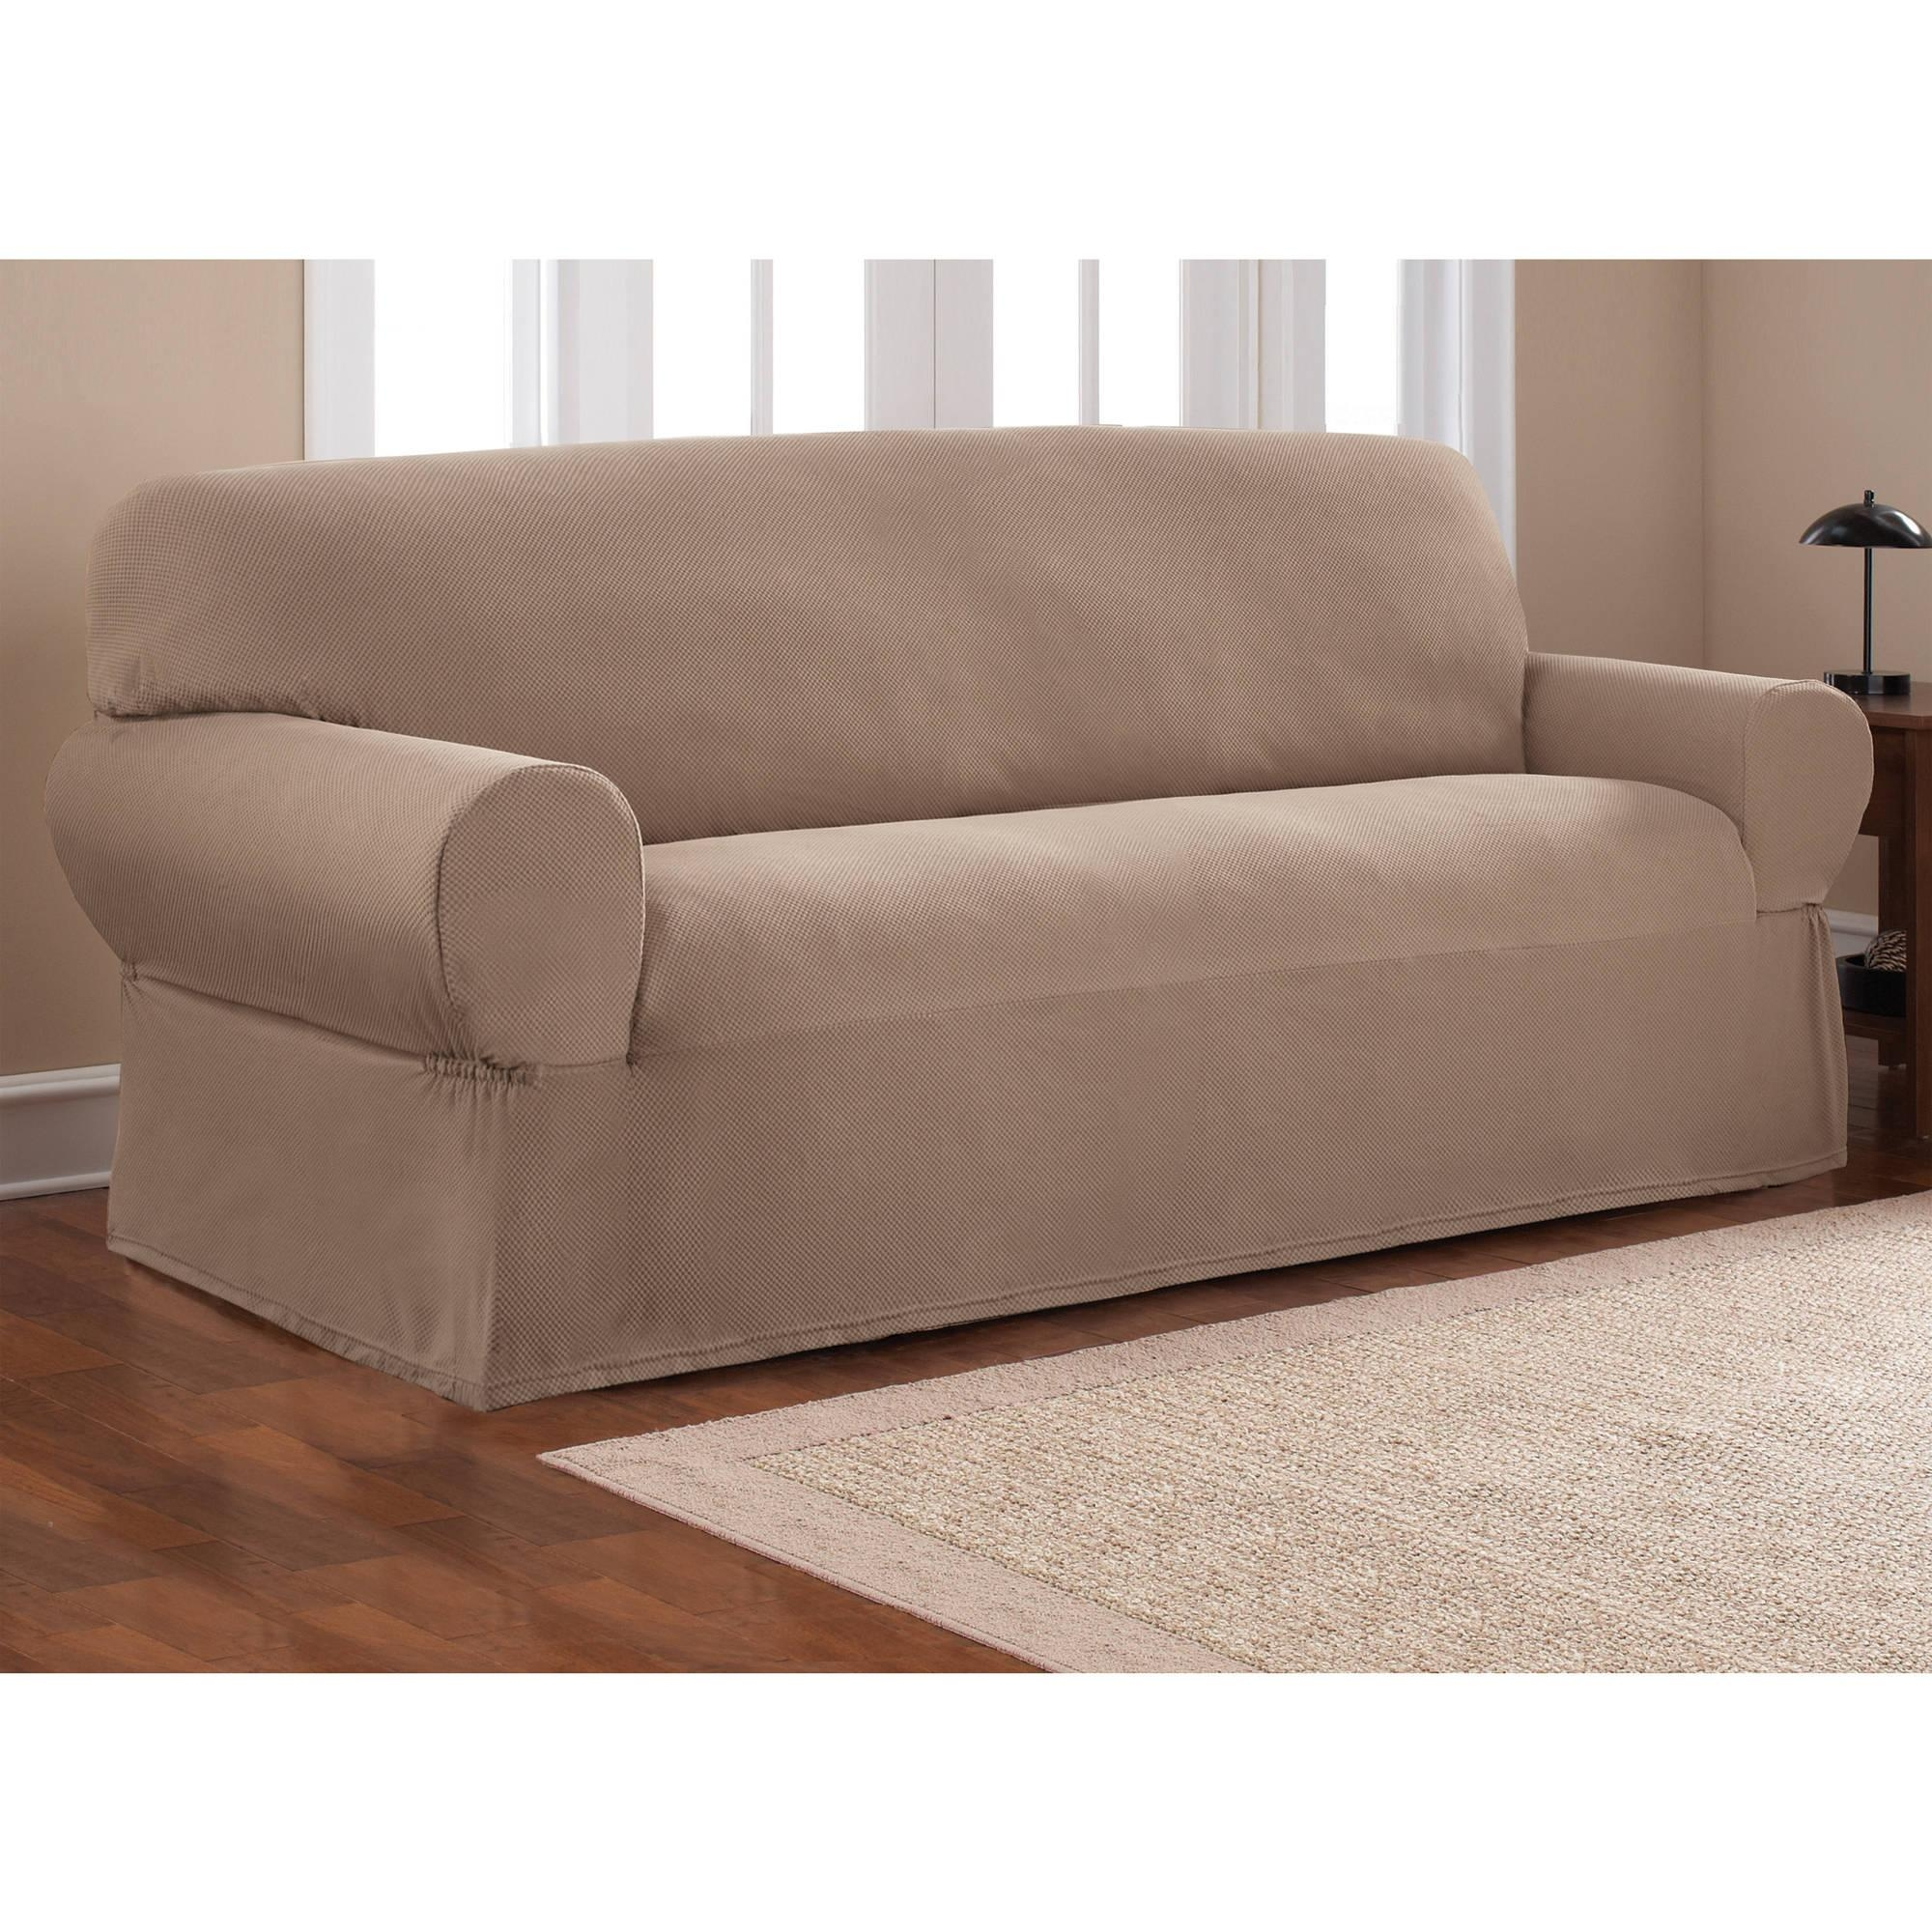 Sofas : Wonderful Club Chair Slipcover Cloth Couch Covers Chaise Inside Large Sofa Slipcovers (Image 17 of 23)